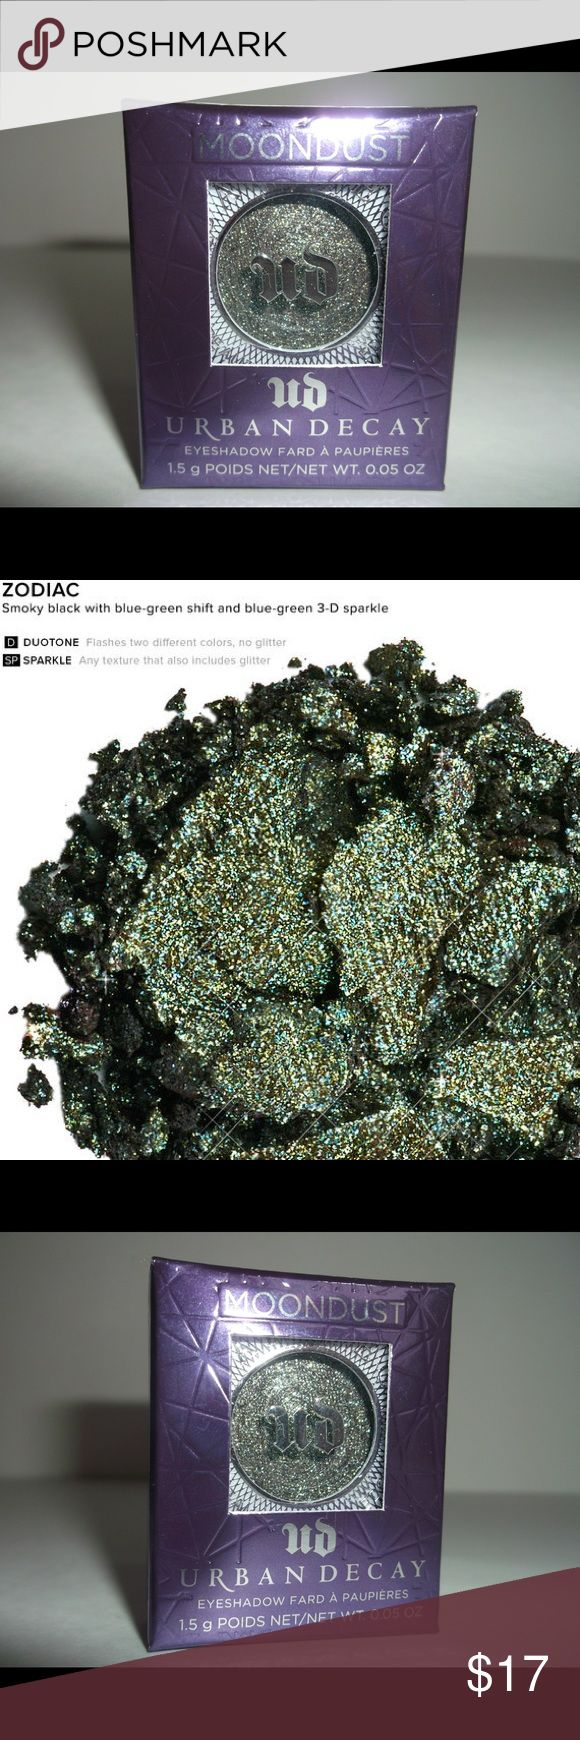 """URBAN DECAY MOONDUST SHADOW """"Zodiac"""" deep green URBAN DECAY MOONDUST SHADOW  Full Size Shade:  Zodiac - smoky black with blue-green shift and blue-green 3-D sparkle What it is formulated WITHOUT: - Parabens - Sulfates  - Phthalates Urban Decay Makeup Eyeshadow"""